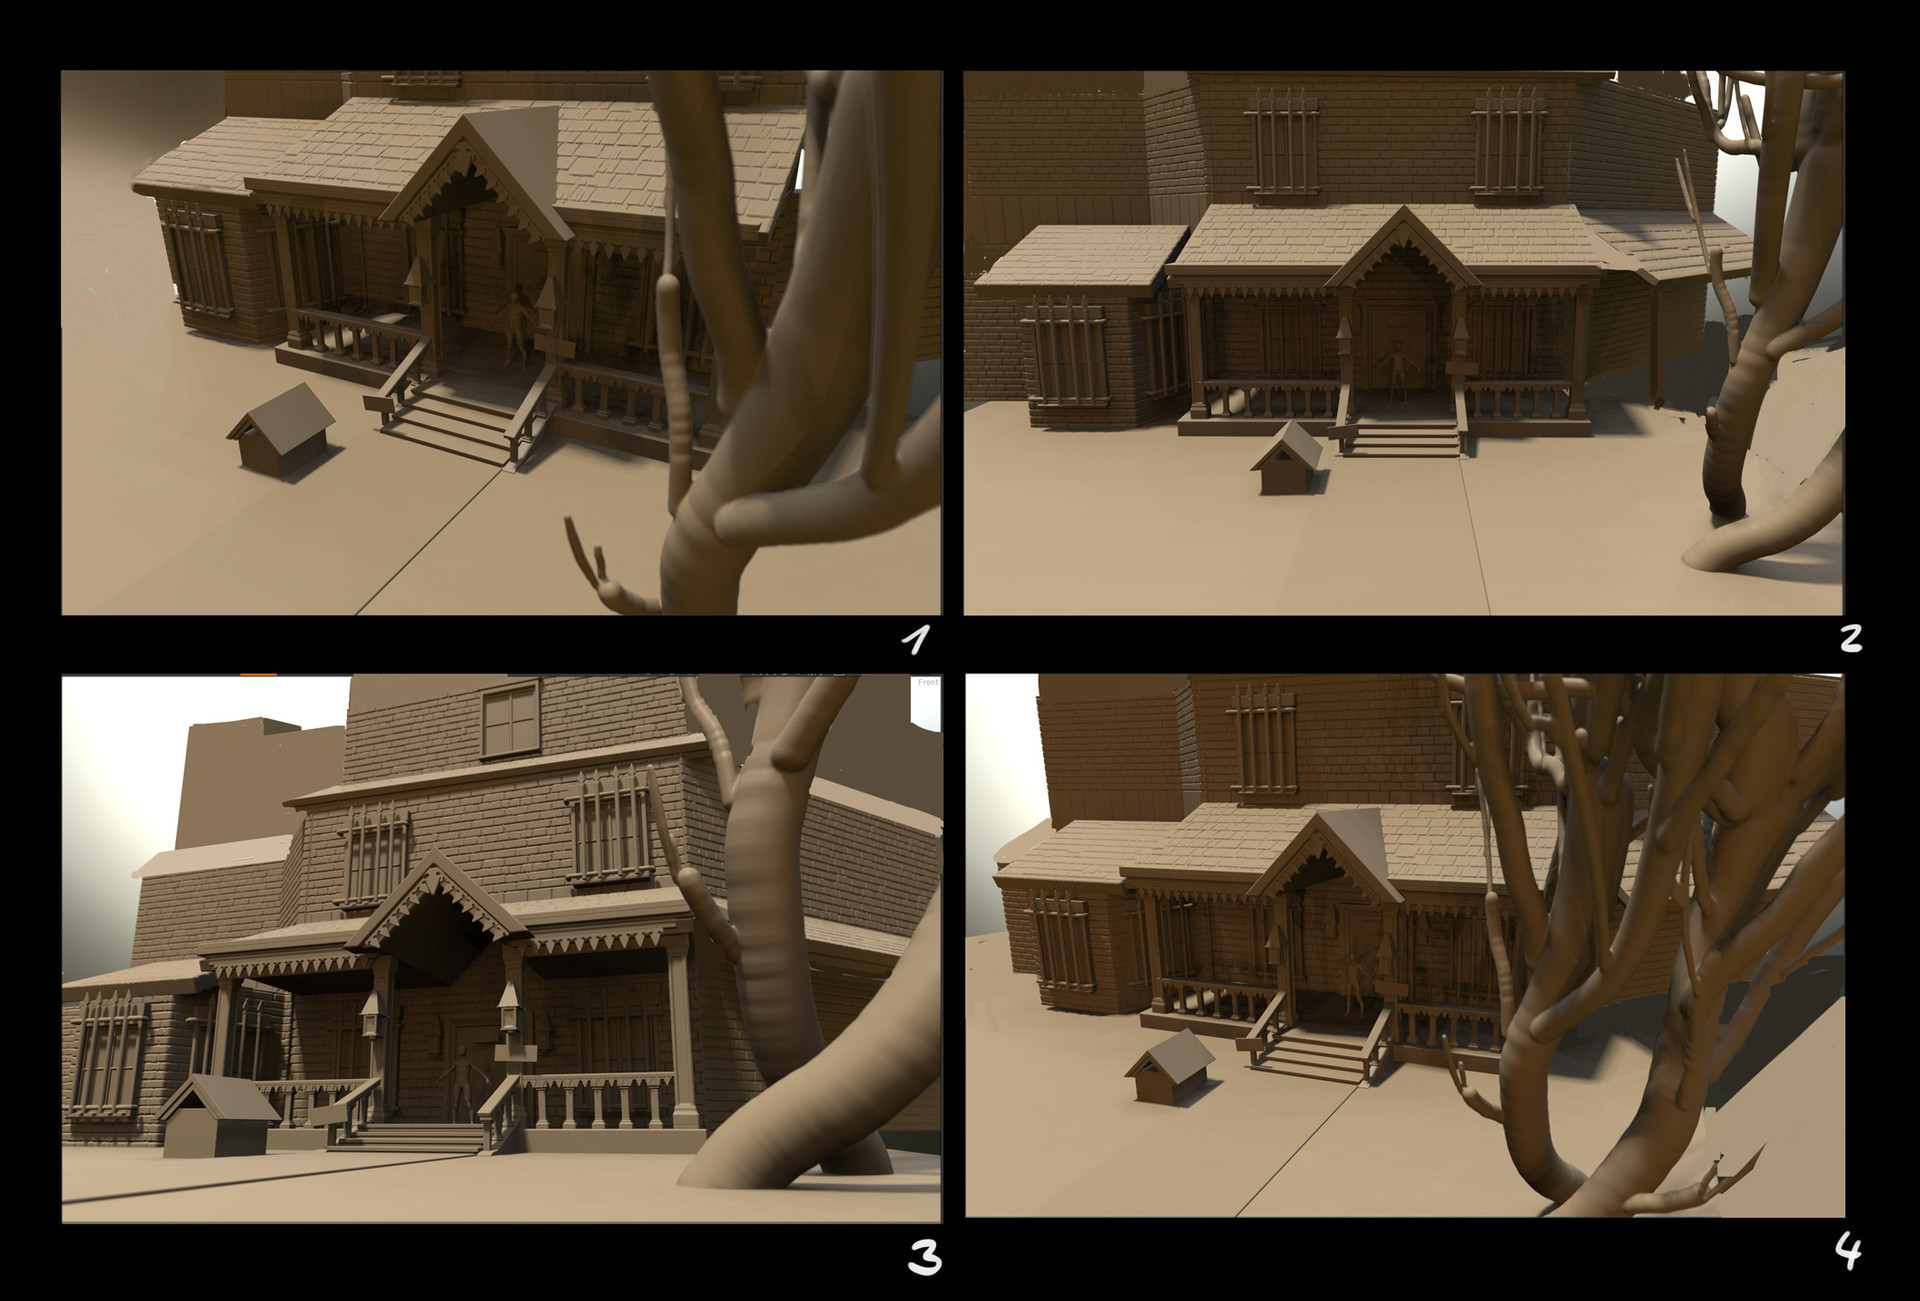 3d concept / camera angle test / paralax test